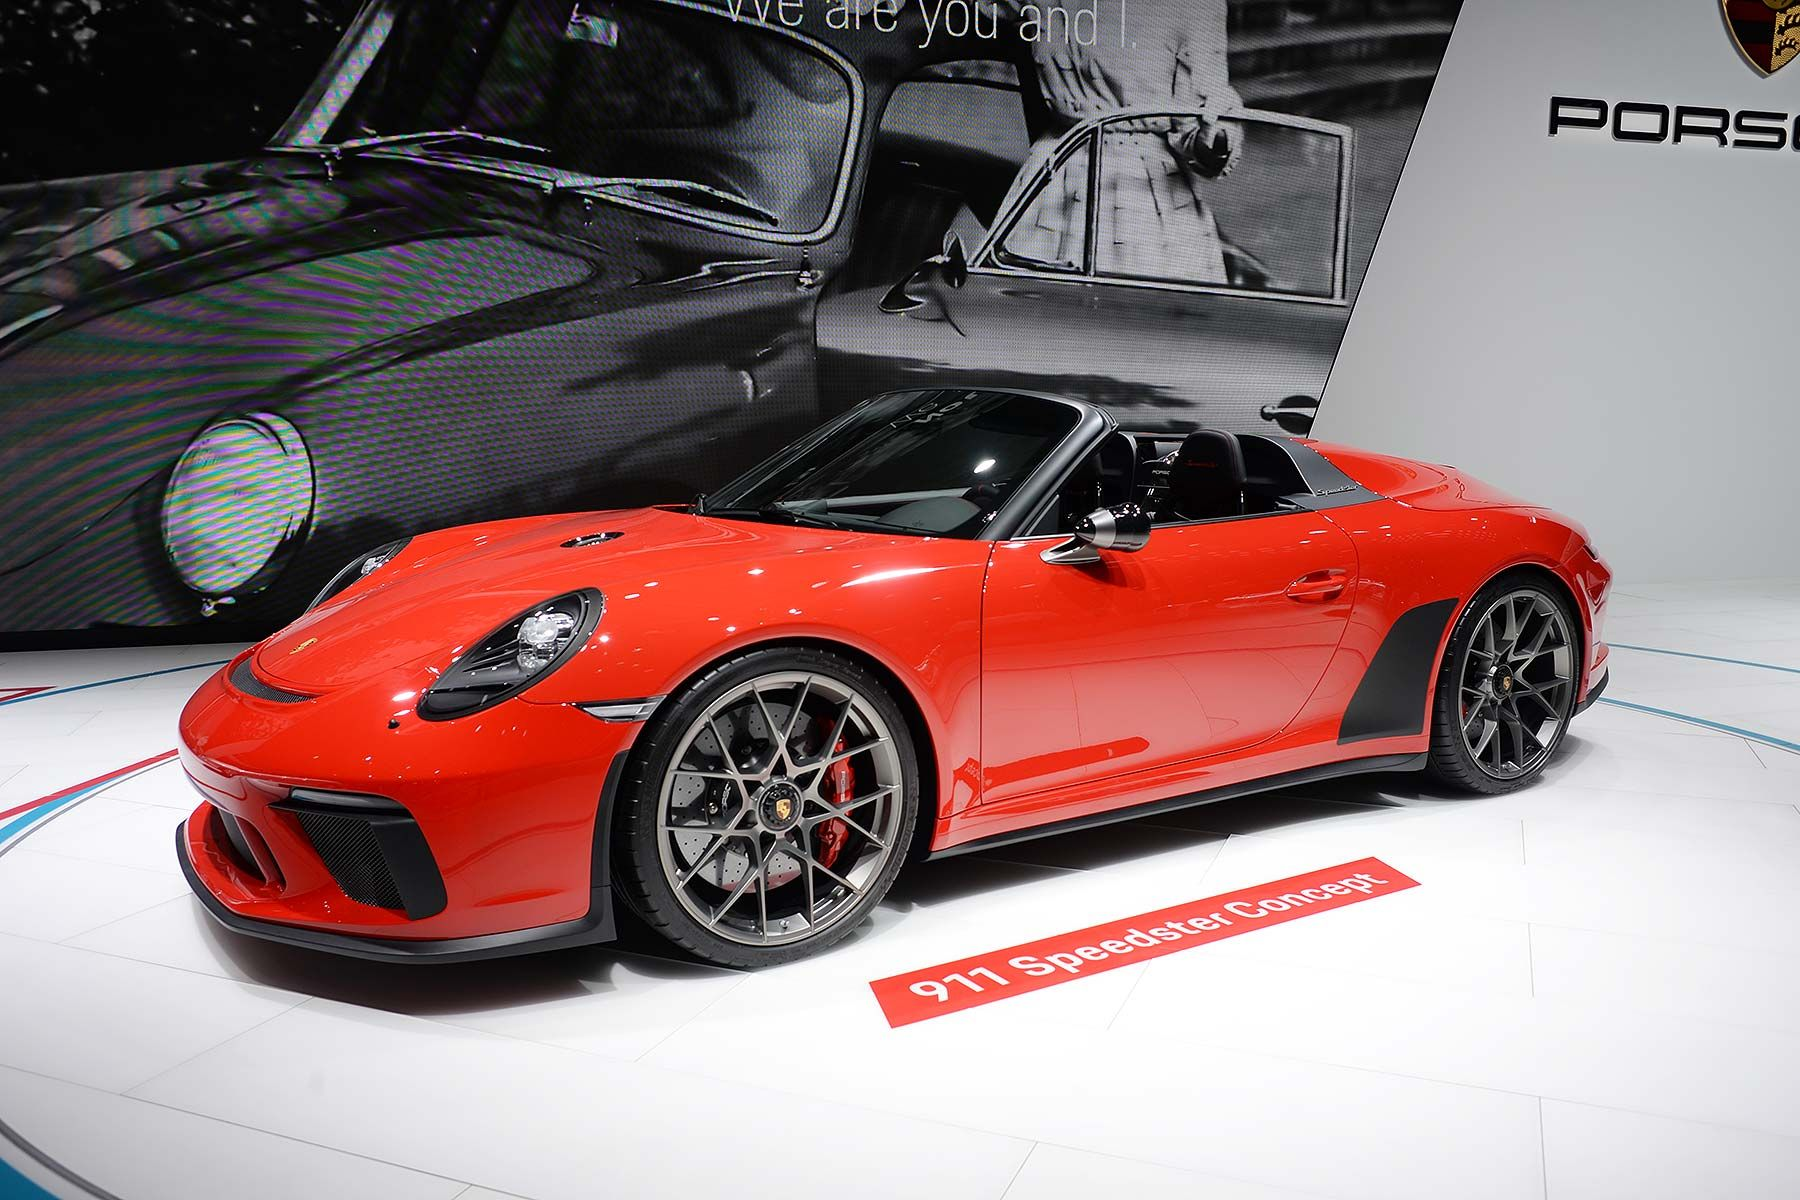 New Limited Edition Porsche 911 Speedster Debuts In Paris